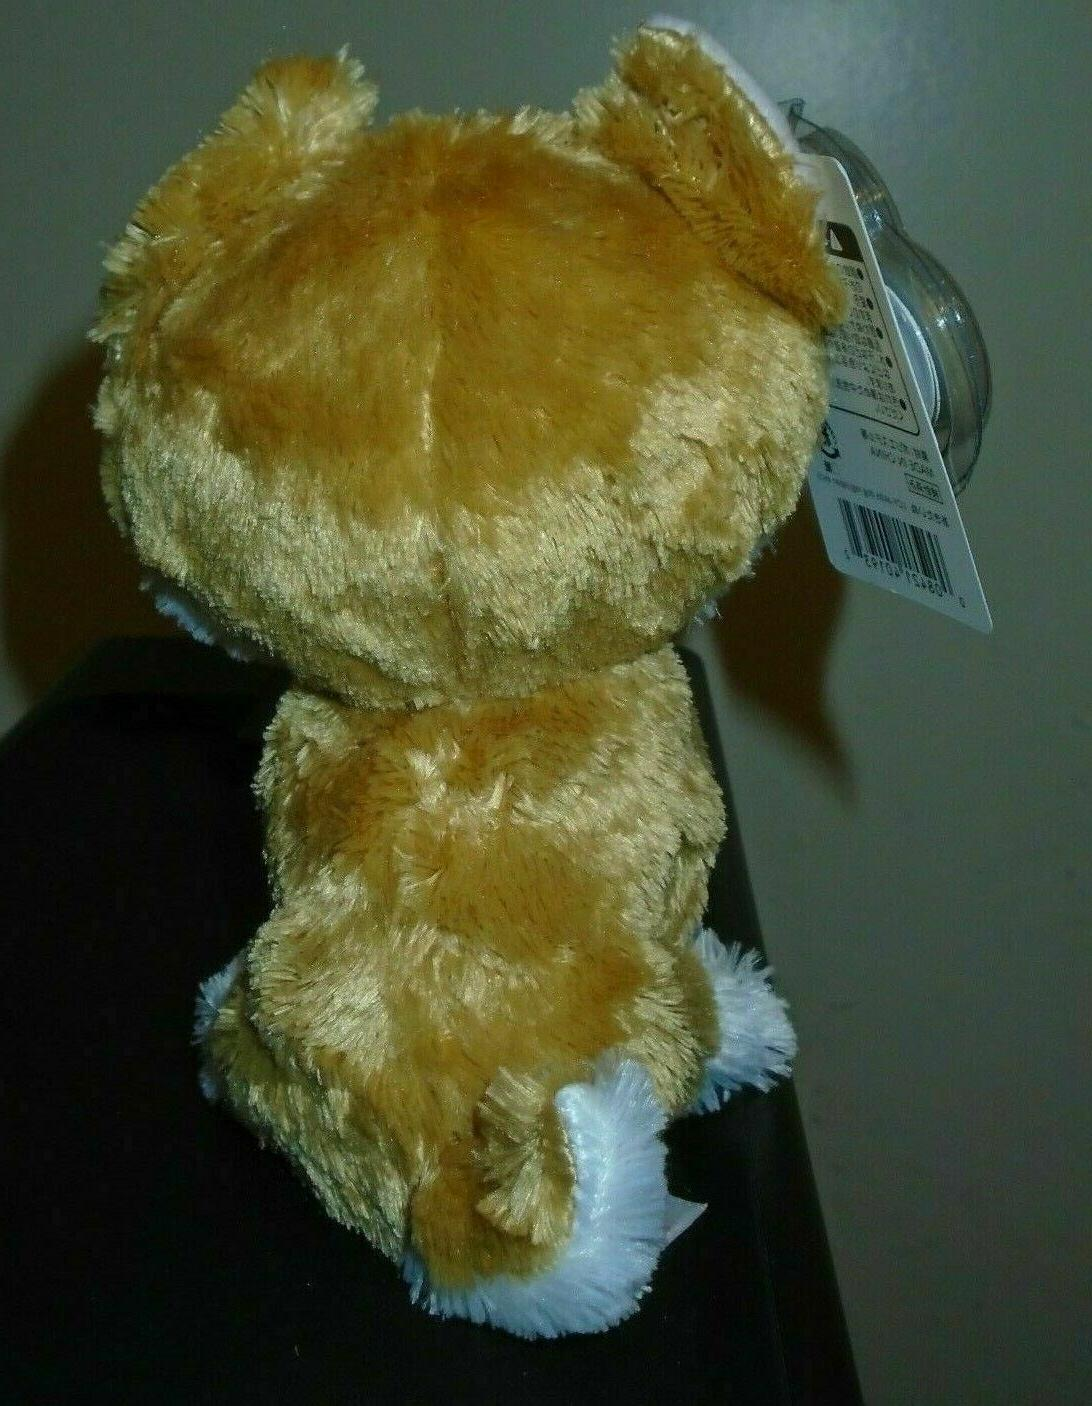 NM* Boo's - LOY the Dog NEW